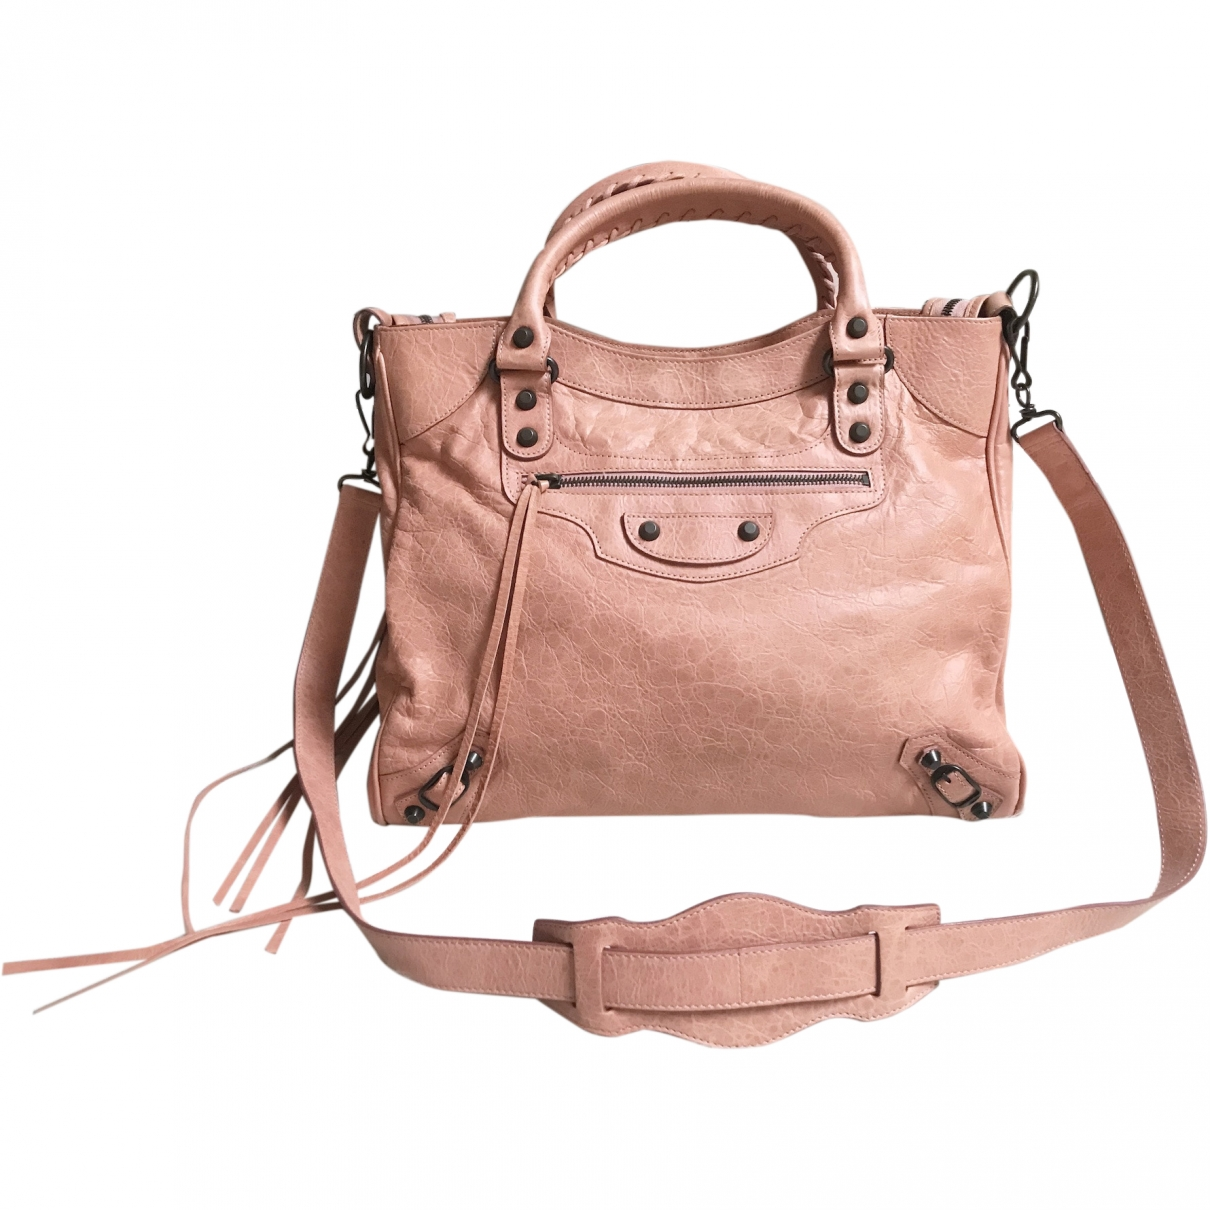 Balenciaga Vélo Pink Leather handbag for Women \N